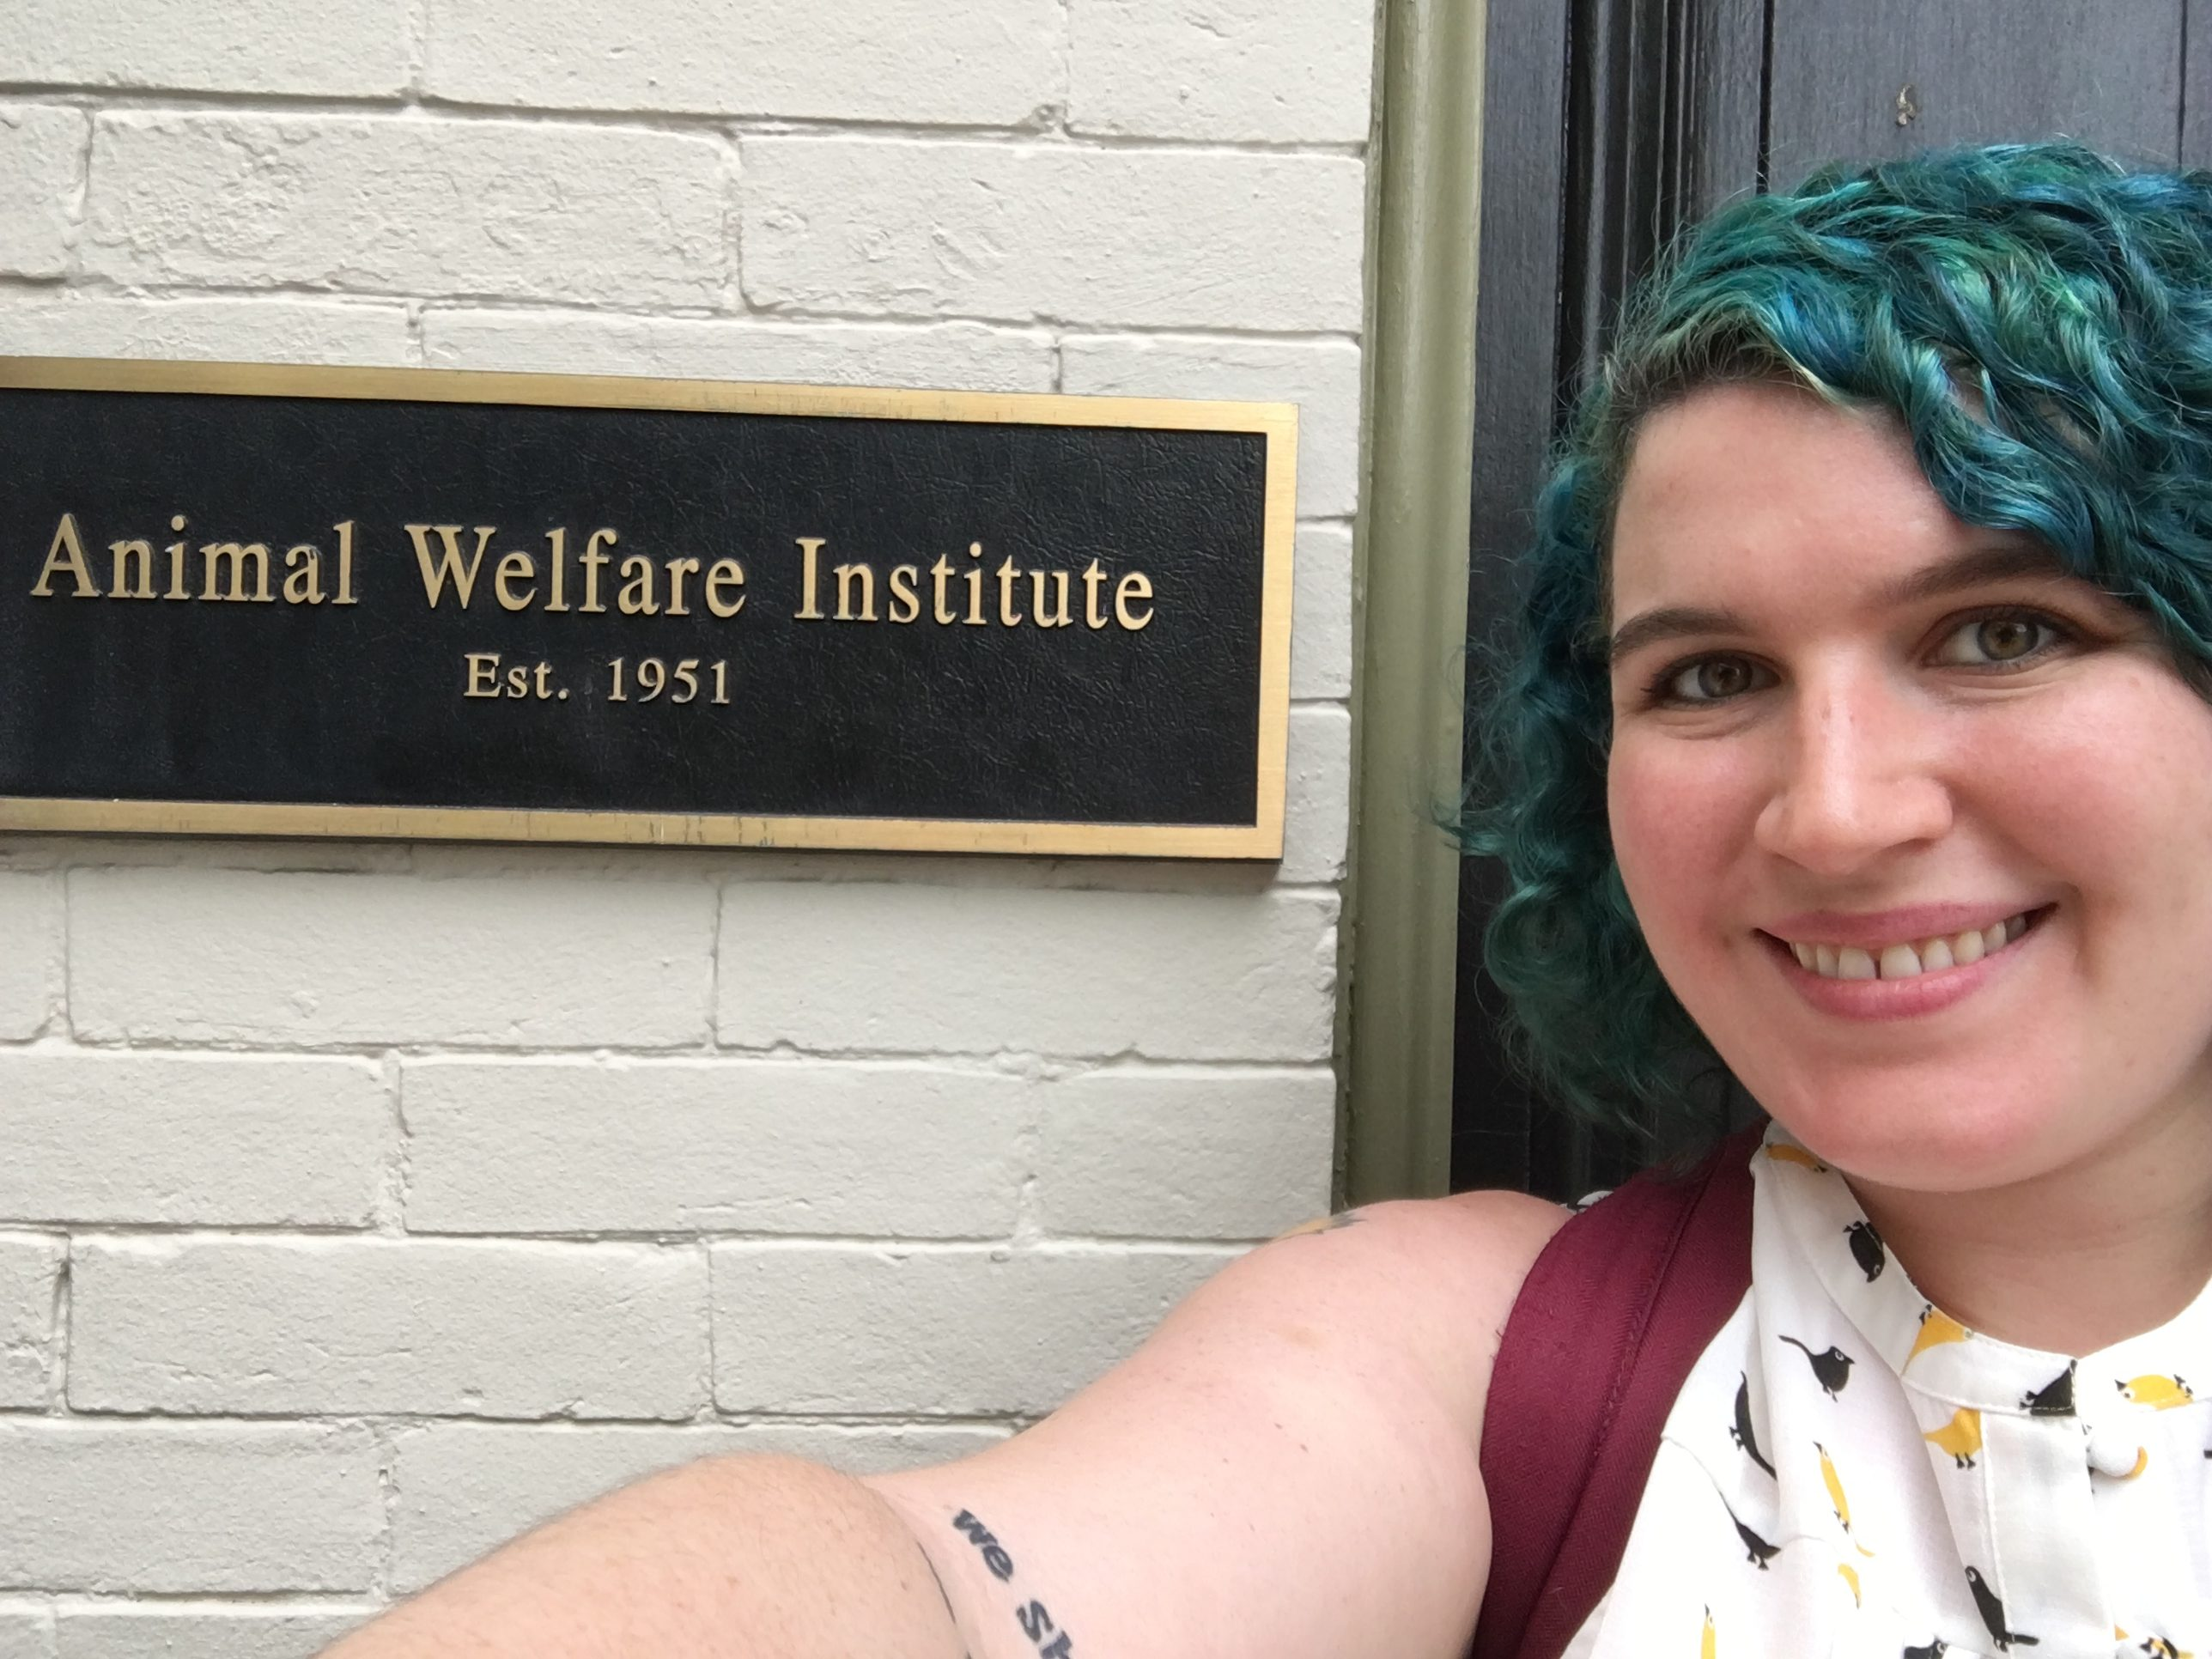 Chelea Blink on the first day of her externship at the Animal Welfare Institute in Washington, D.C.